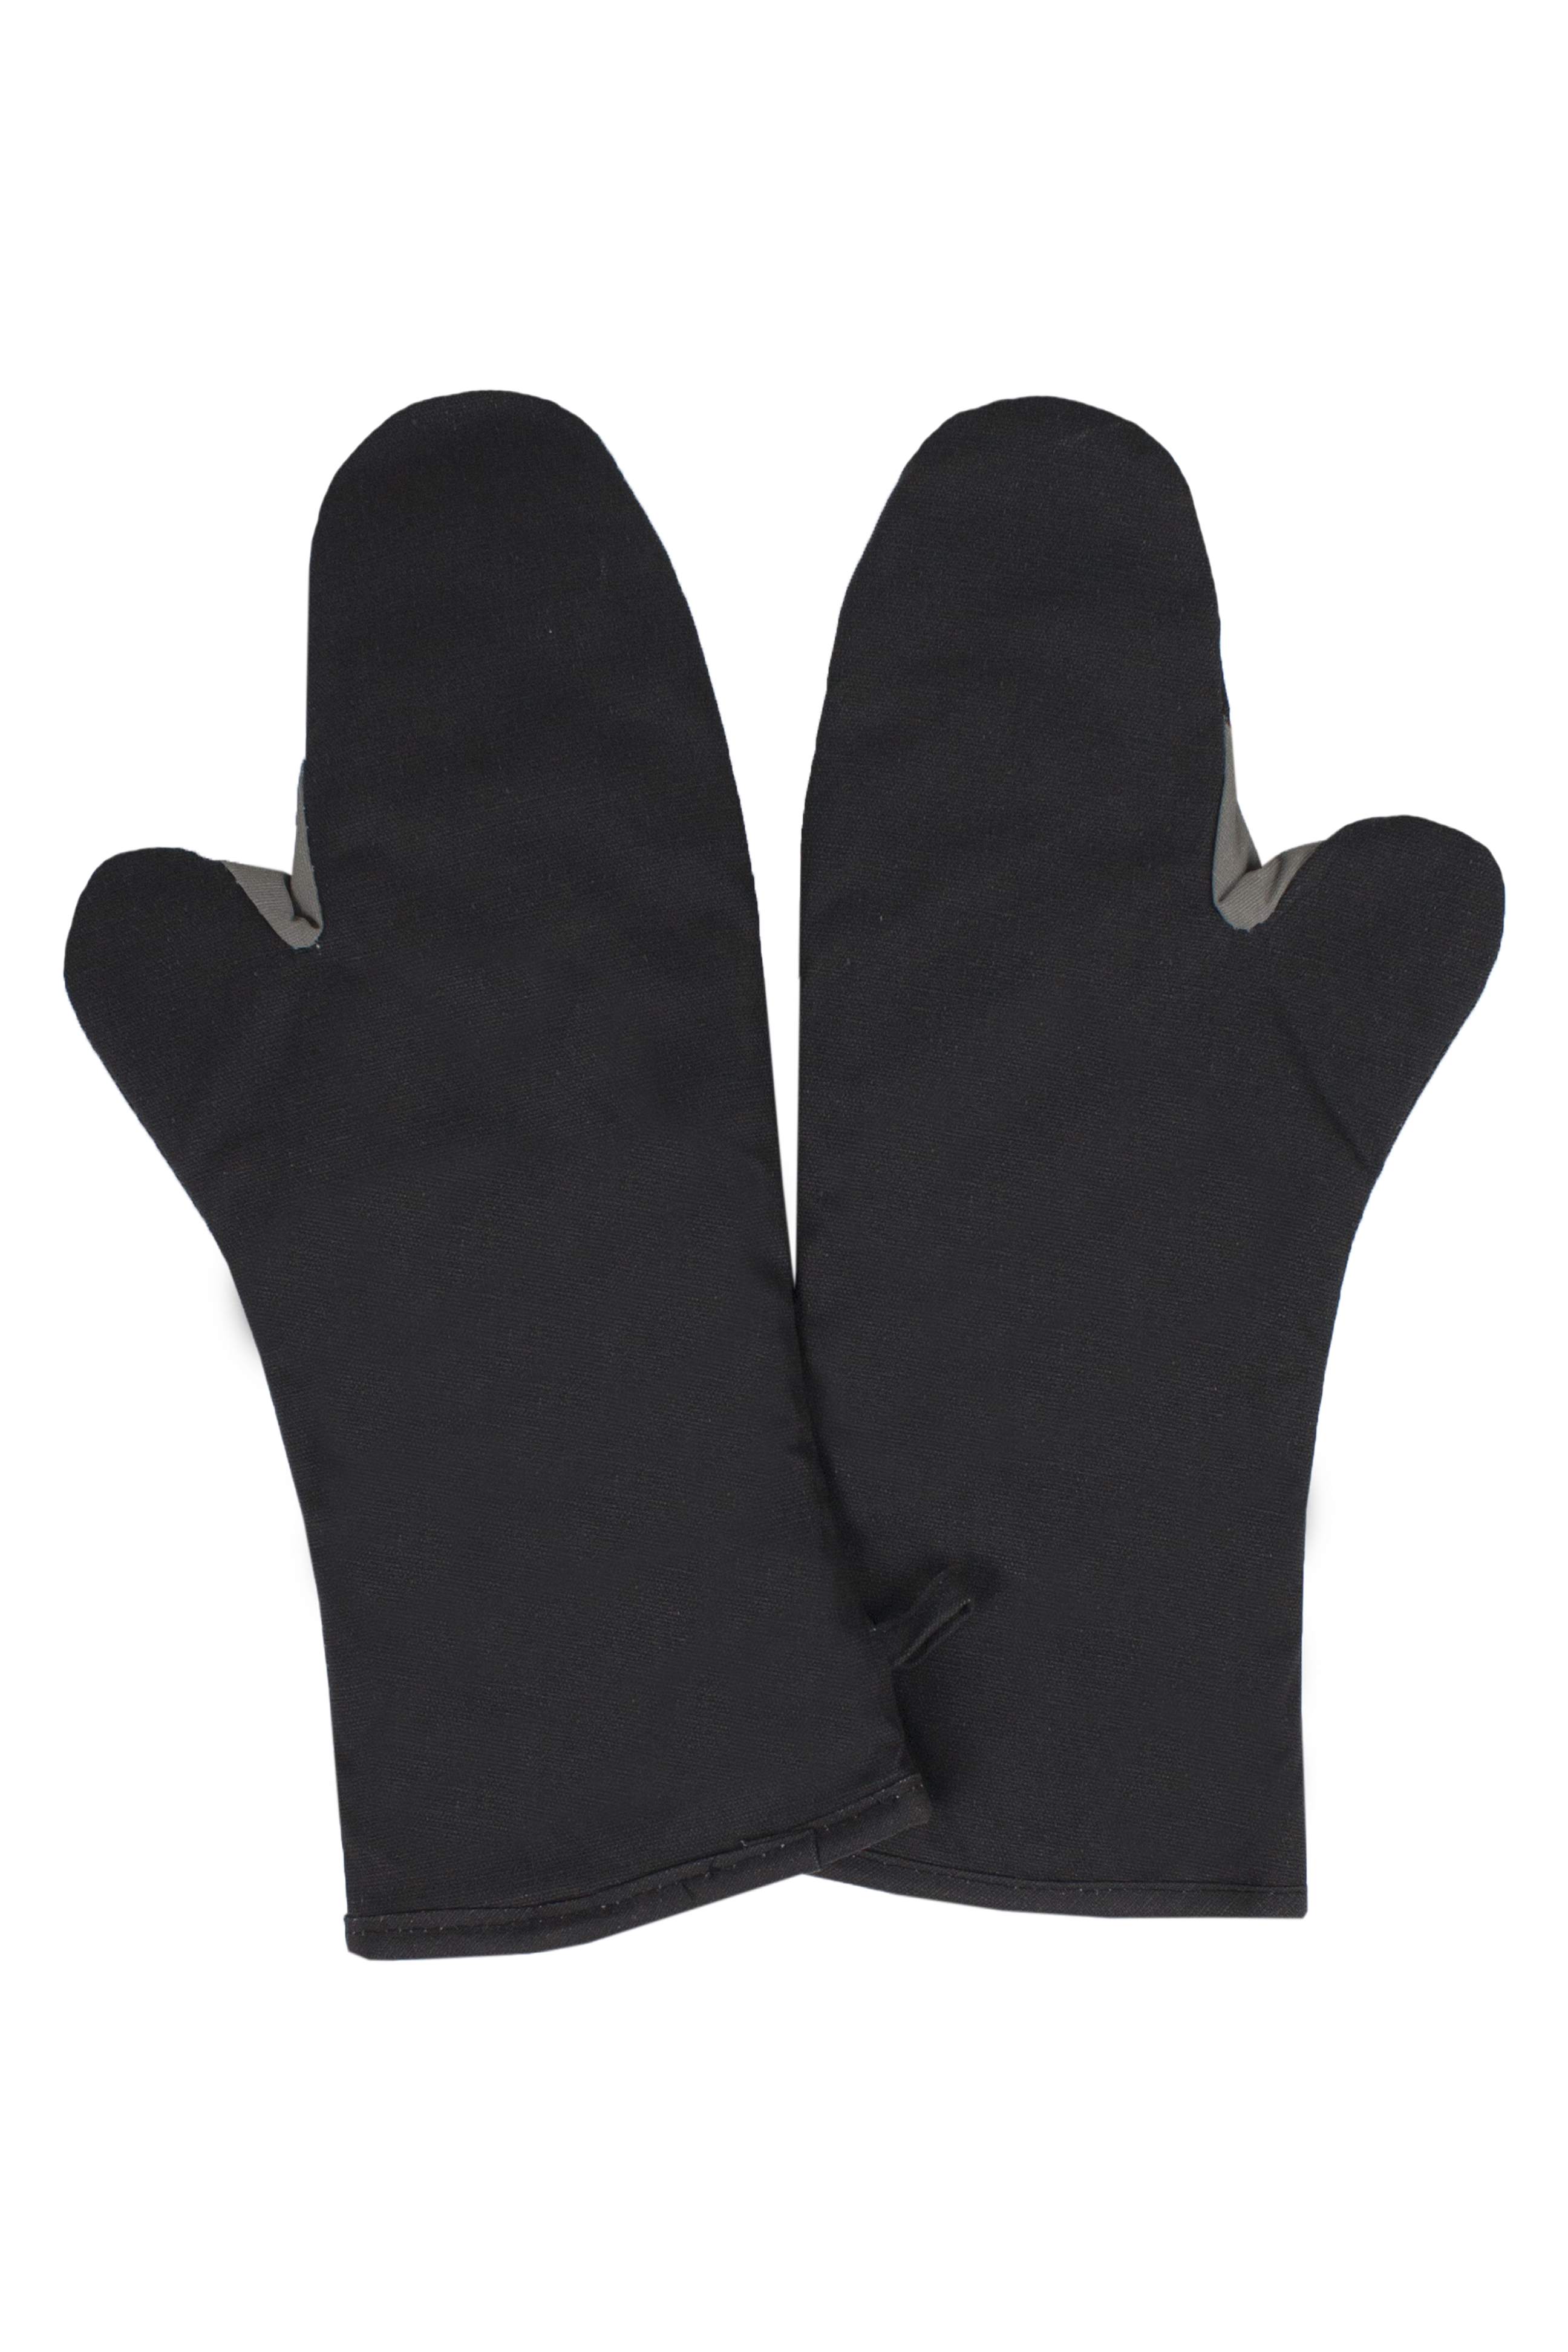 Ultra-Protective PYROTEX Oven Mitt, Elbow Length